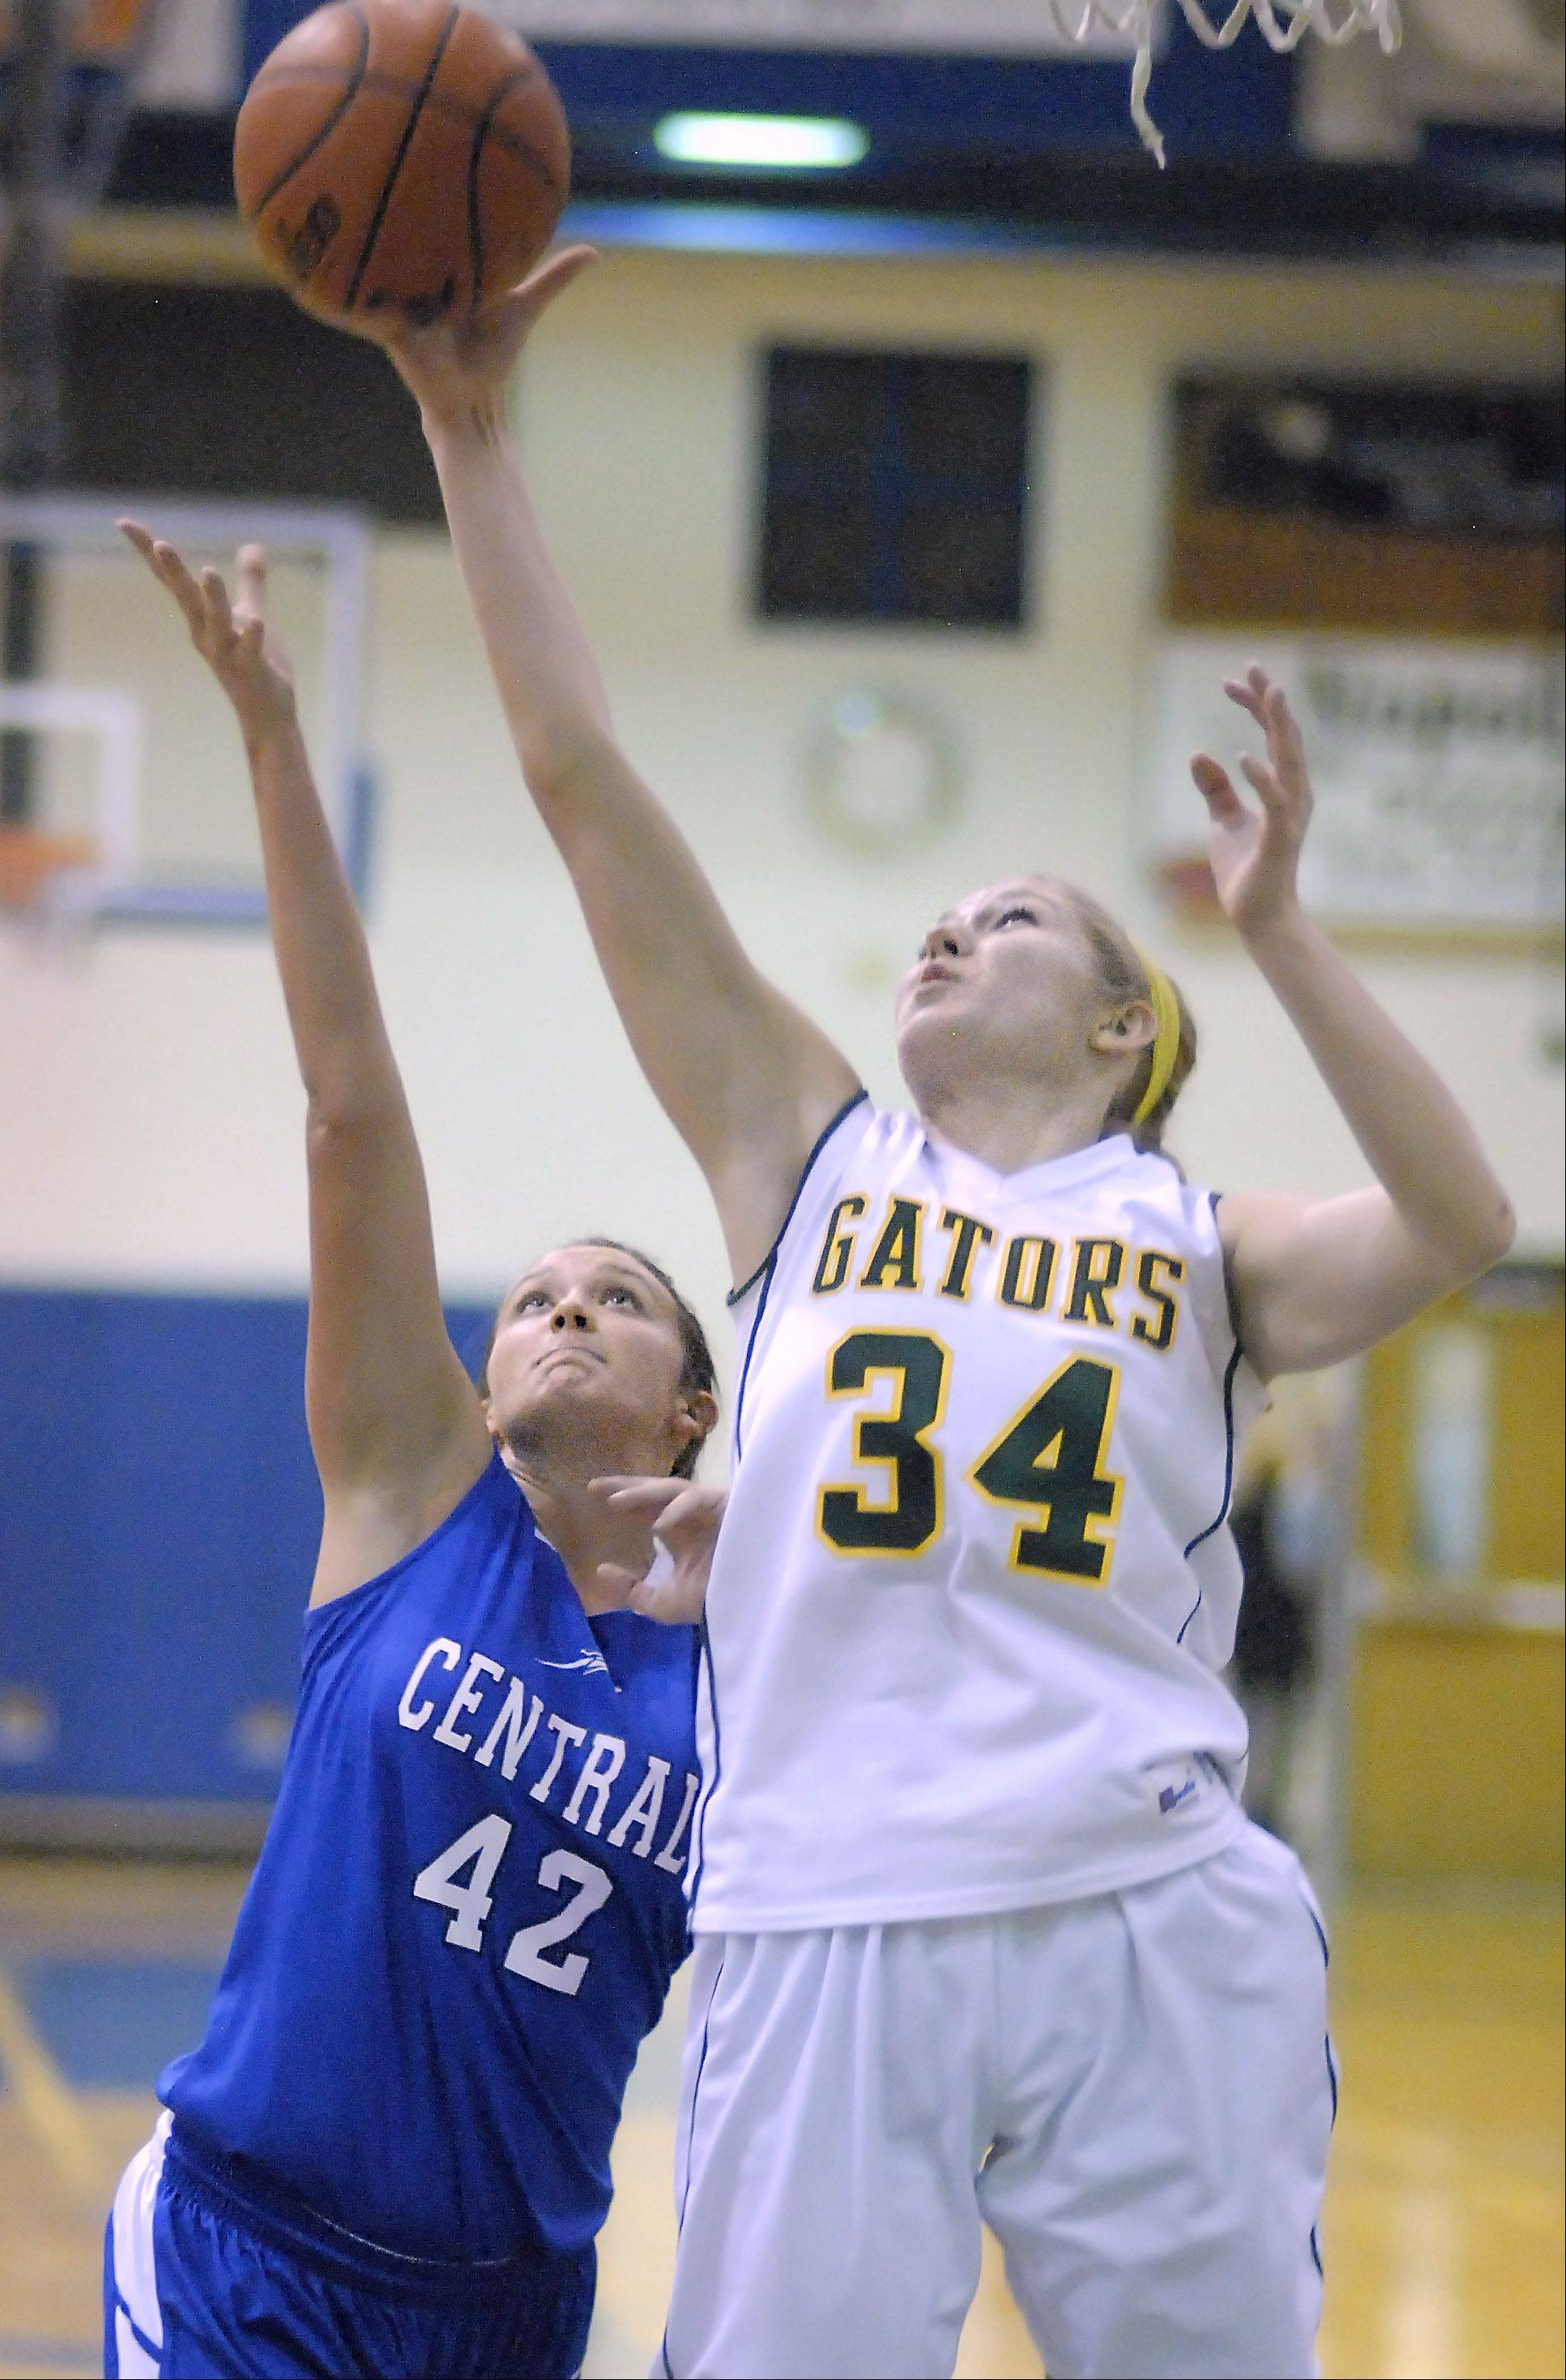 Burlington Central's Alison Colby and Crystal Lake South's Sara Mickow both leap for a rebound in the first quarter on Saturday, December 15.